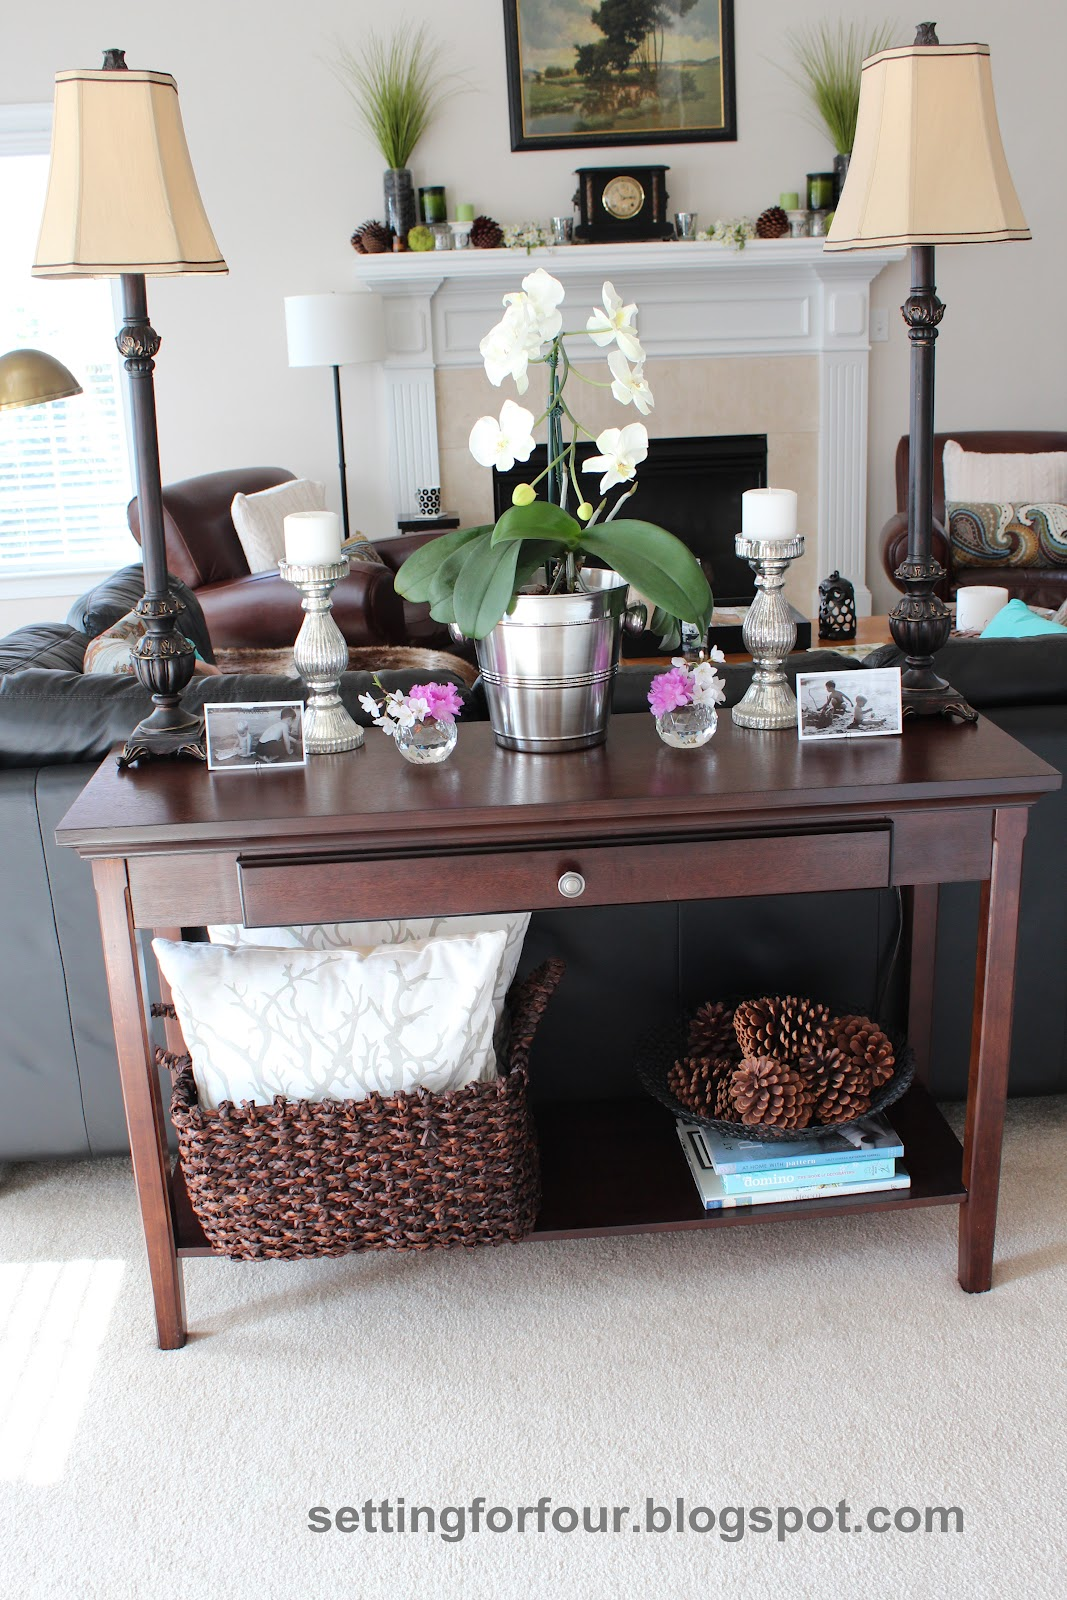 Styling a sofa table setting for four for Living room sofa table decorating